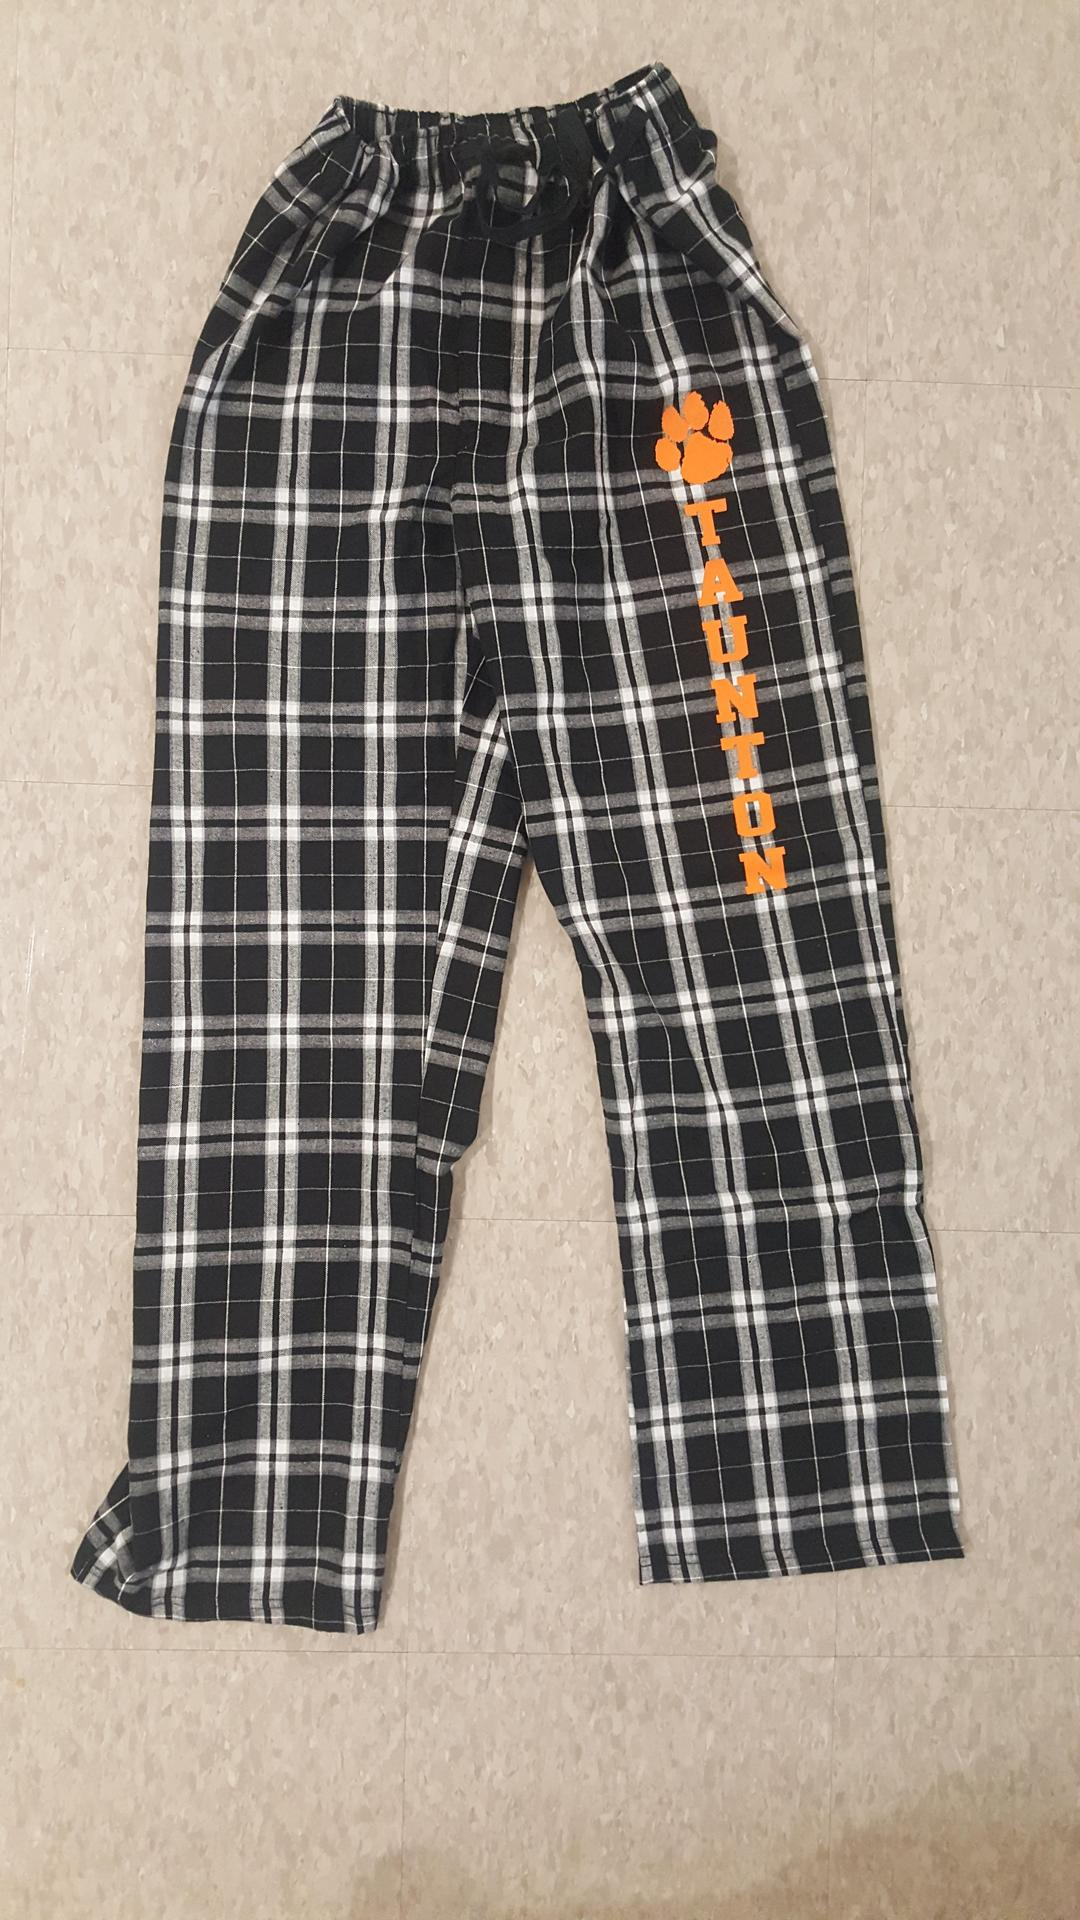 Black And white pajama pant with screen print Xs- xl  24.00